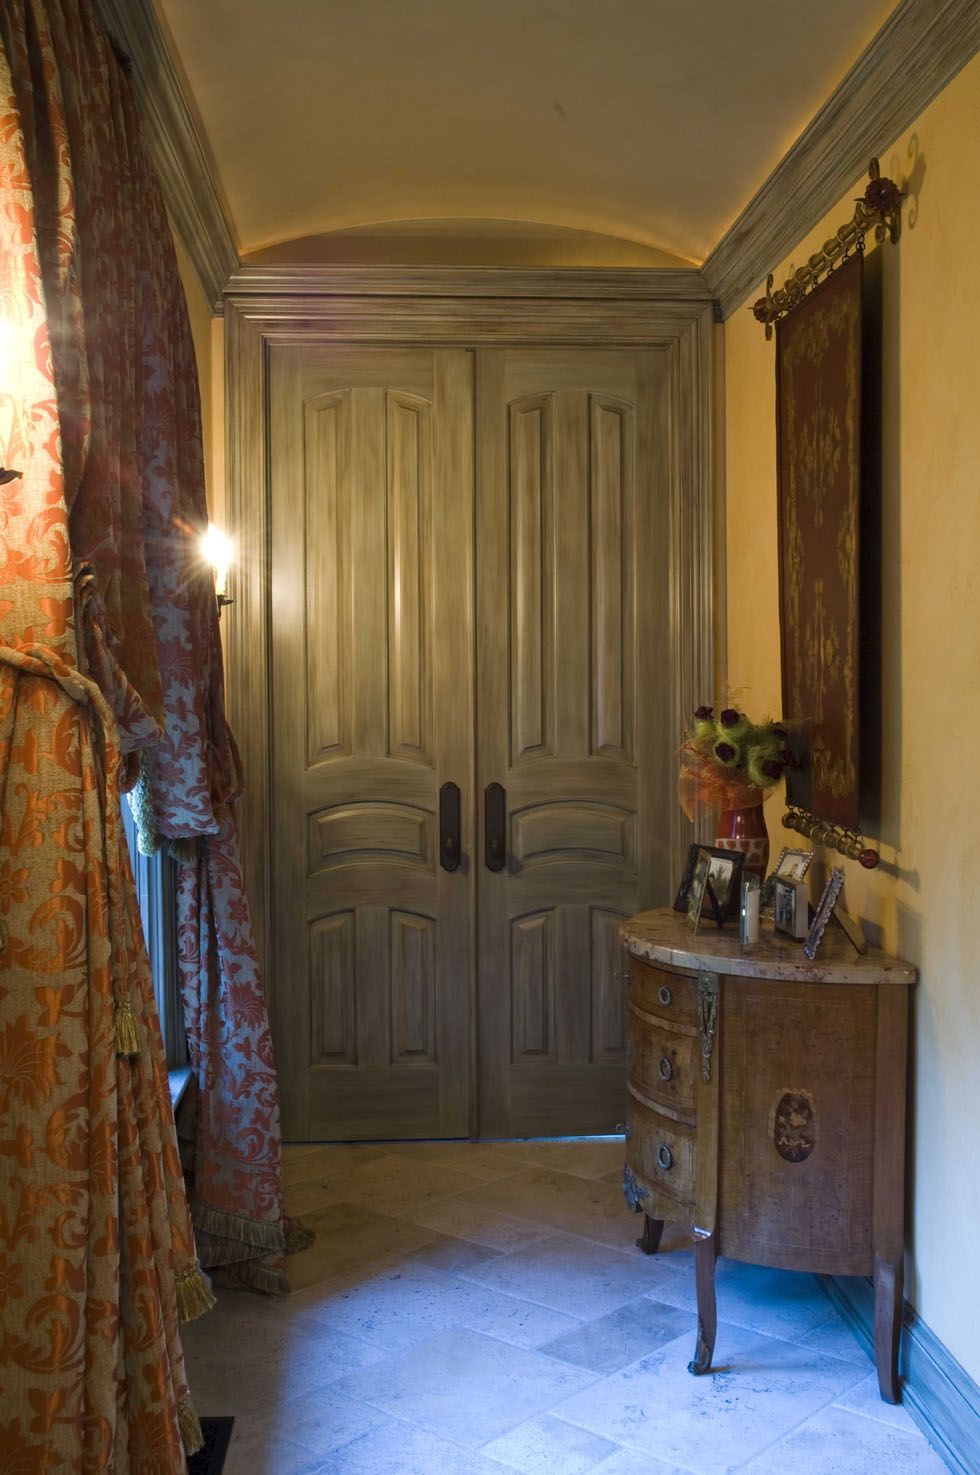 Interior Door tuscan interior doors pictures : Lake Bluff Tuscan Residence | Dream home | Pinterest